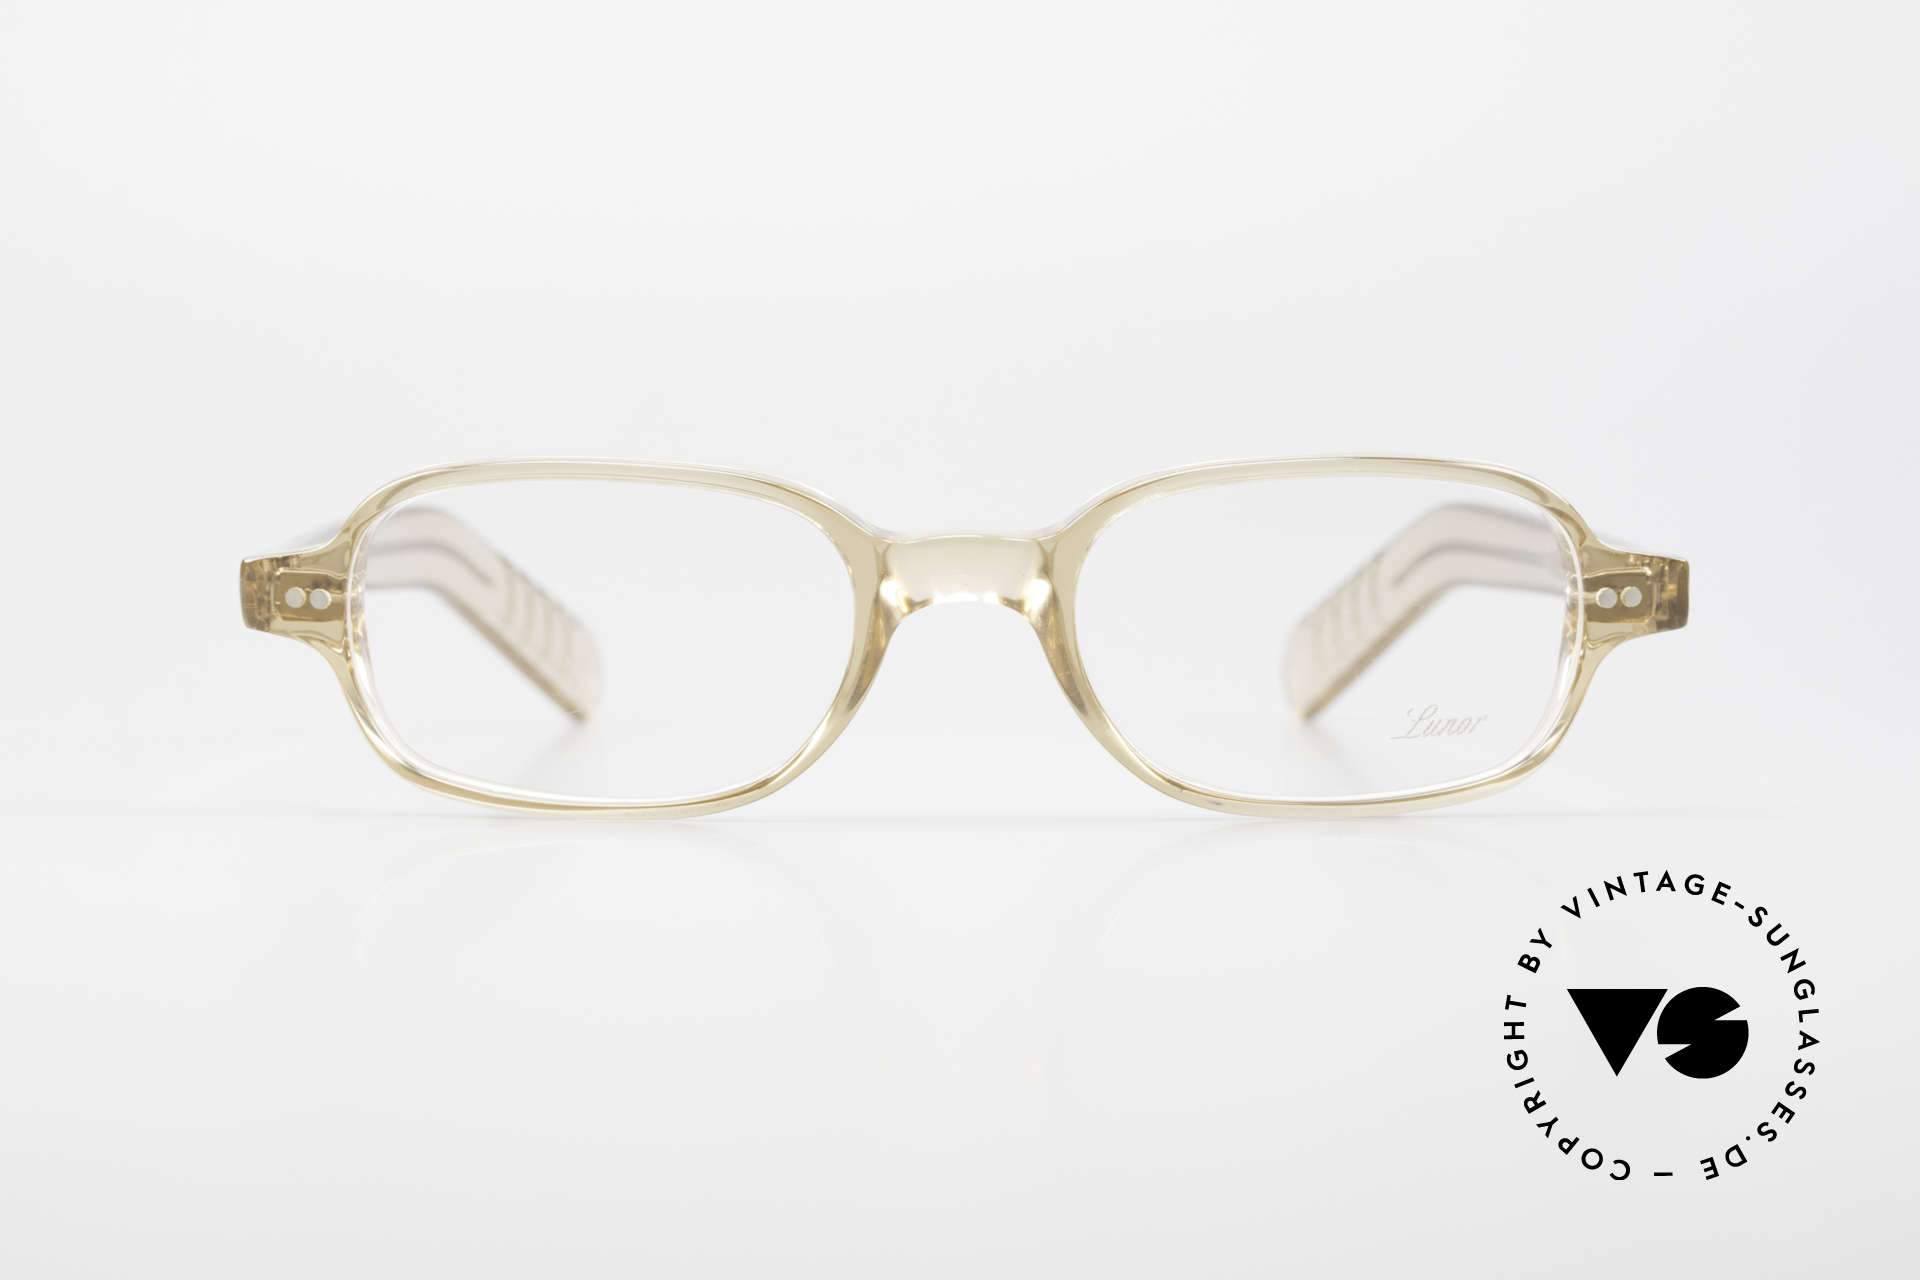 Lunor A56 Classic Lunor Acetate Glasses, riveted hinges; cut precise to the tenth of a millimeter, Made for Men and Women